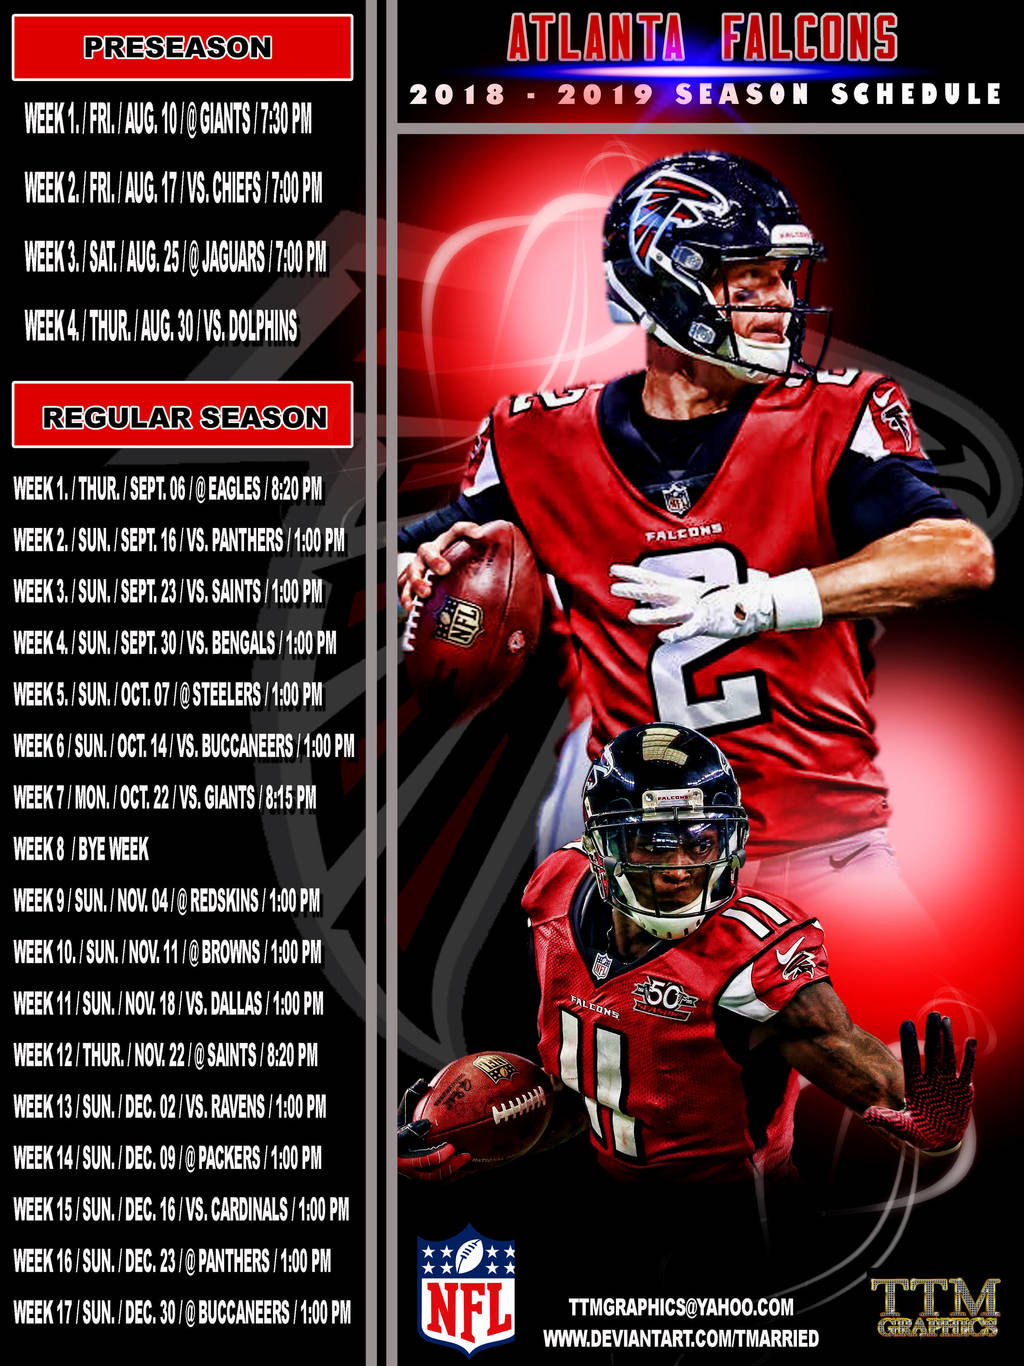 2018-2019 season schedule (atlanta falcons) by tmarried on deviantart